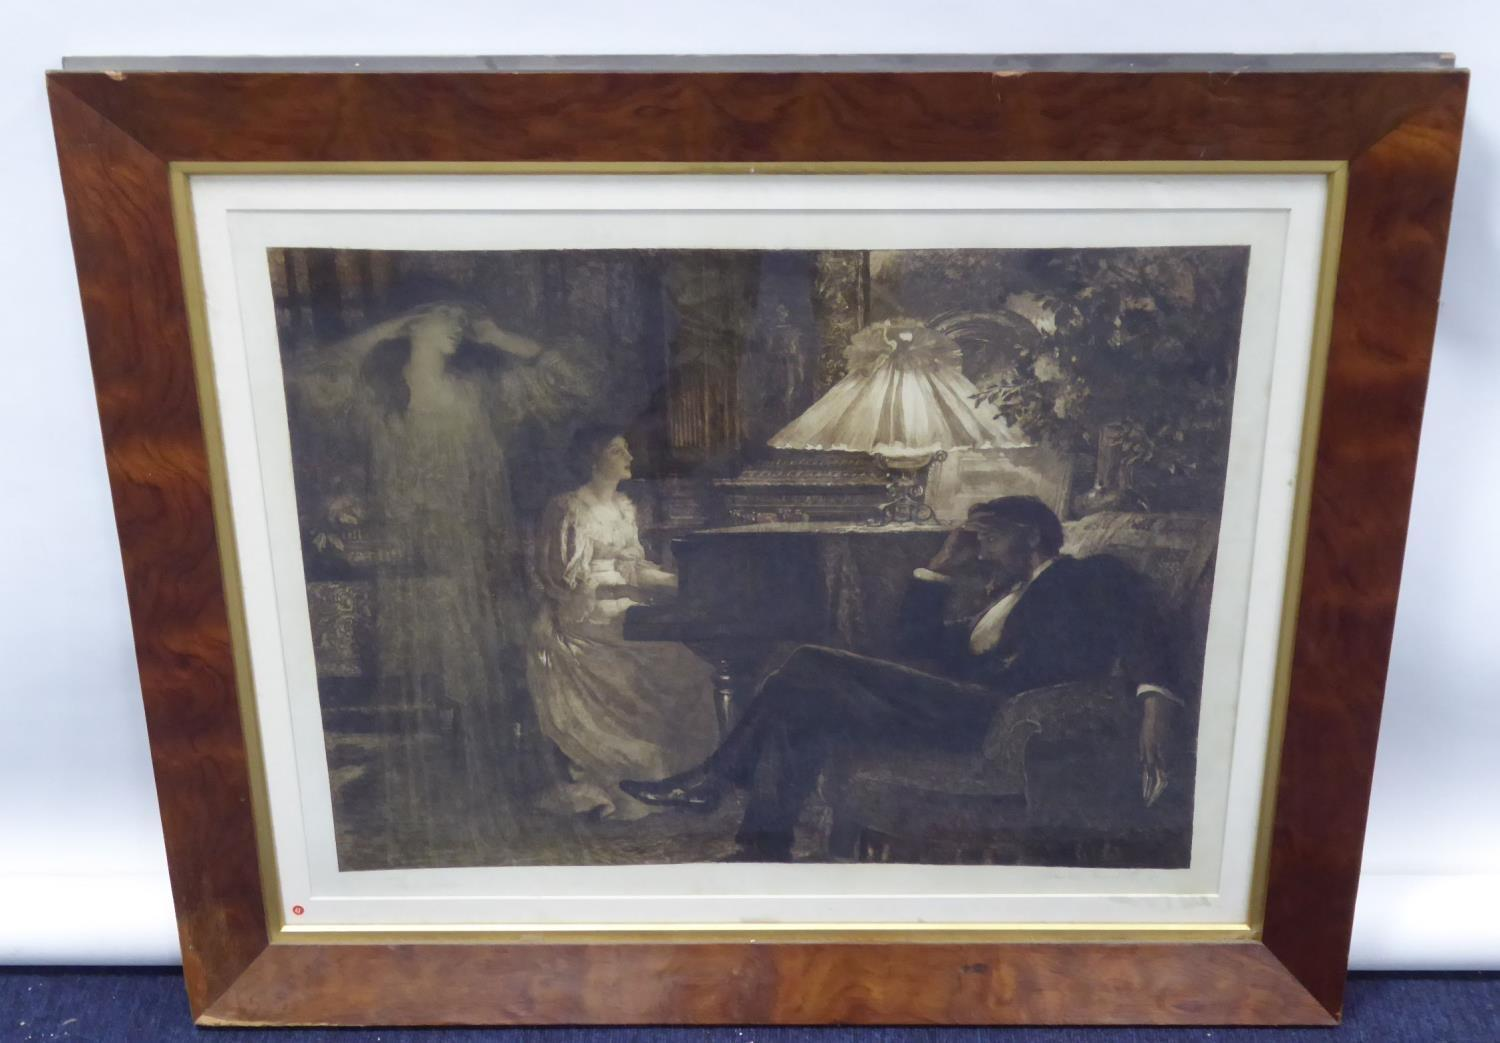 Lot 60 - ROBERT W MACBETH AFTER FRANK DICKSIE, ETCHING ON JAPAN PAPER, drawing room interior with a lady at a